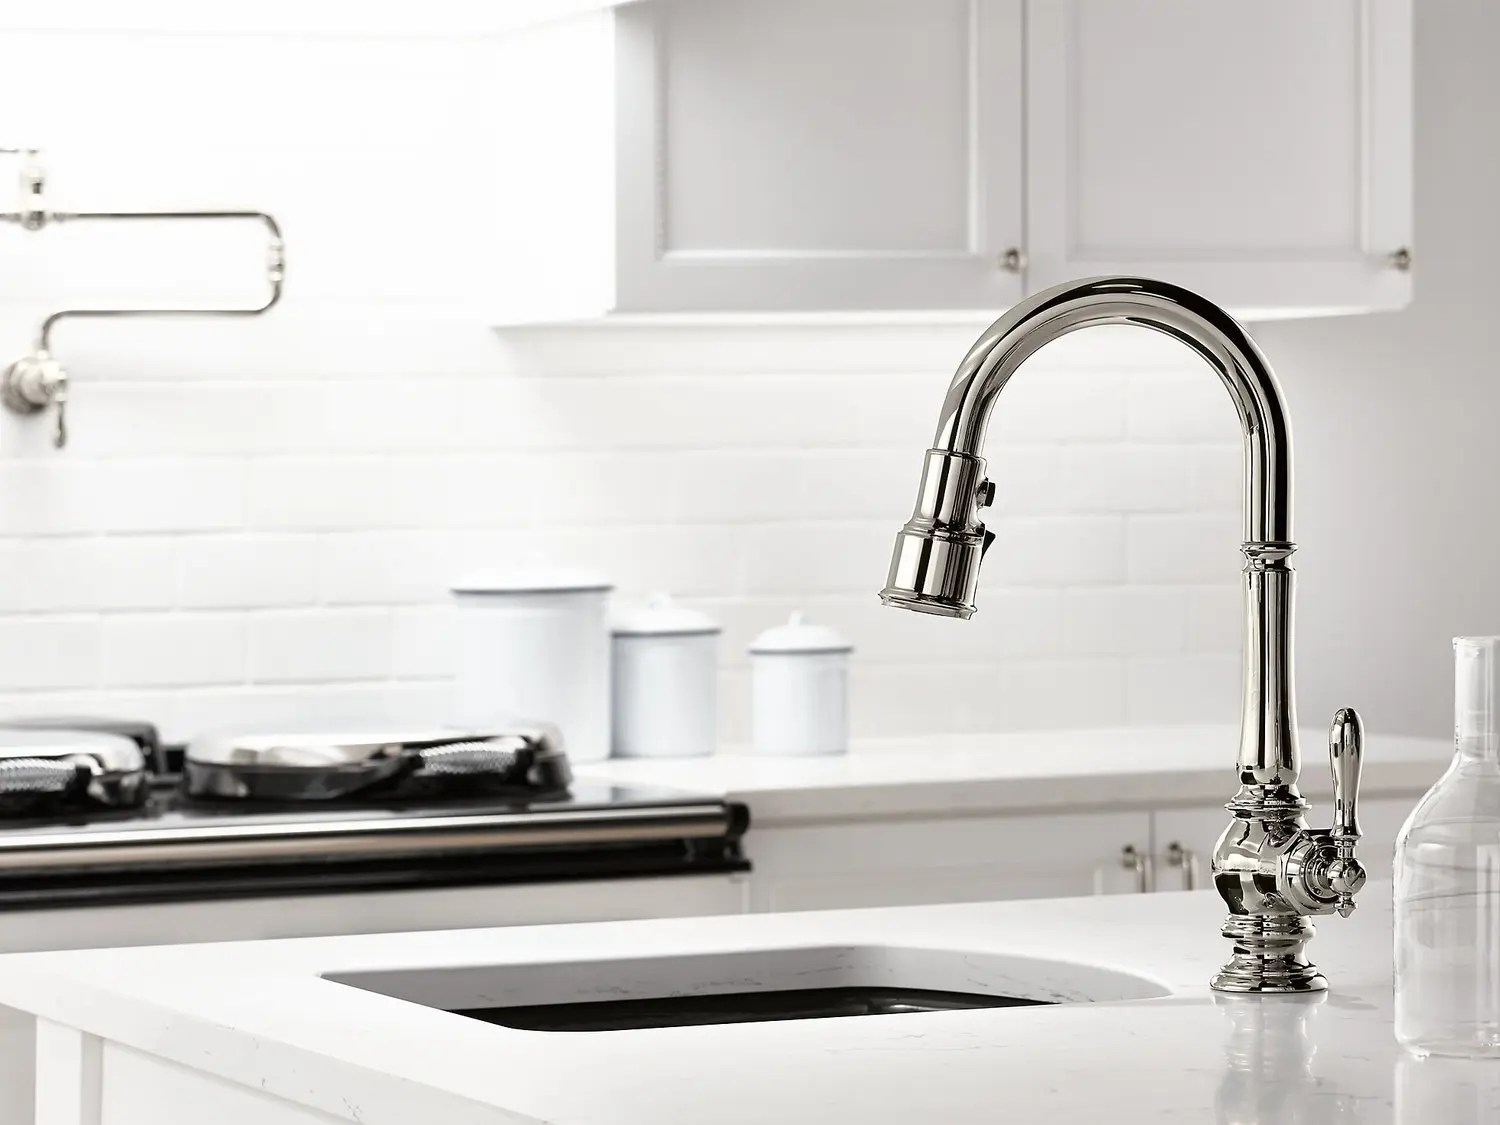 oil rubbed bronze single hole kitchen sink faucet with 16 pull down spout and turned lever handle docknetik magnetic docking system and 3 function